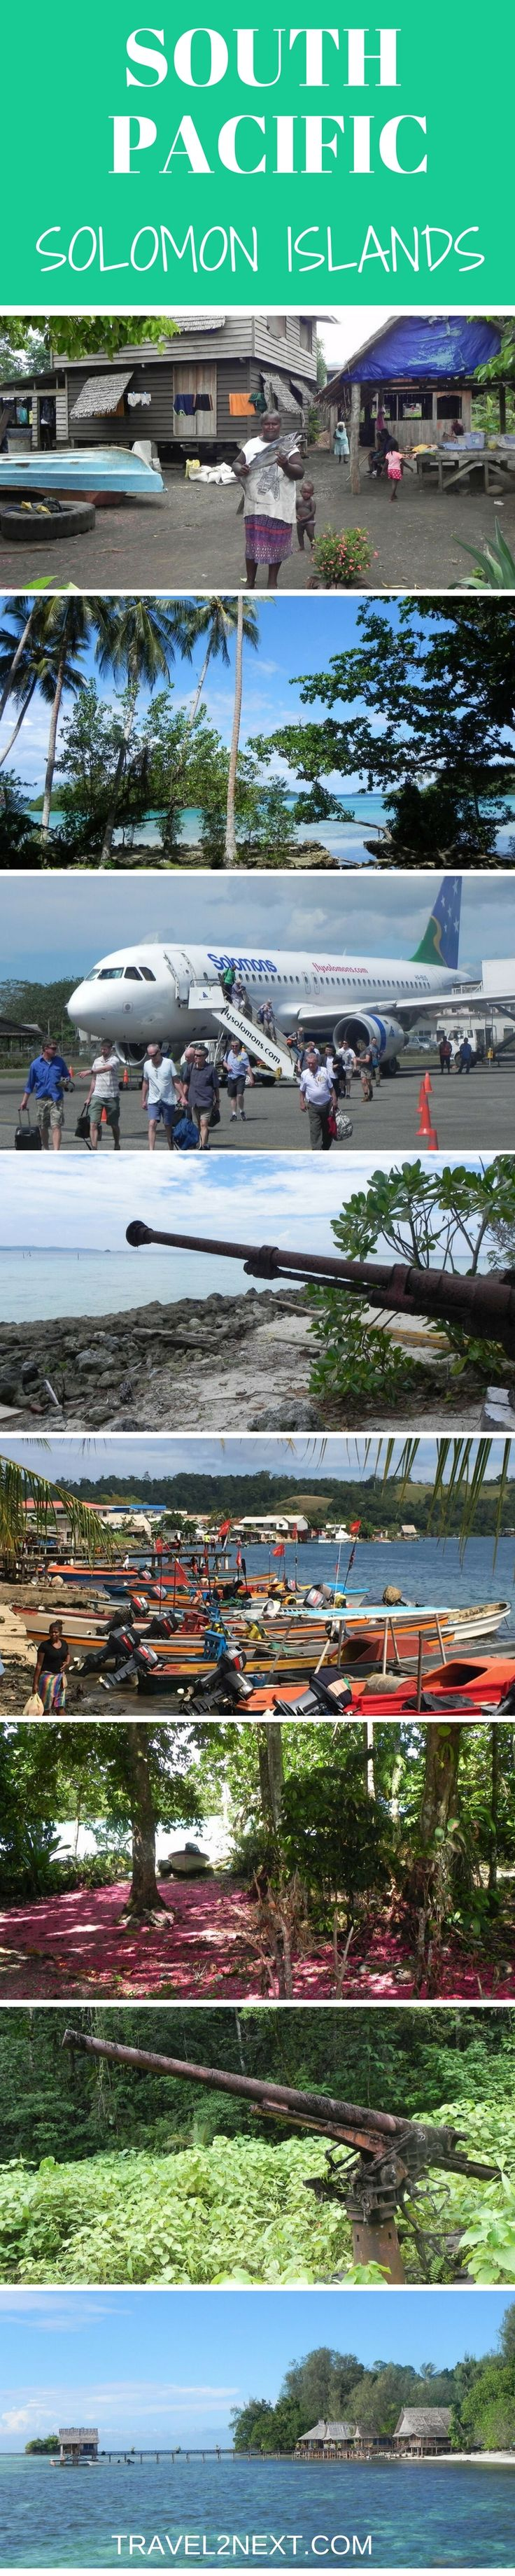 The Solomon Islands in the South Pacific is a string of islands that will take you back in time.